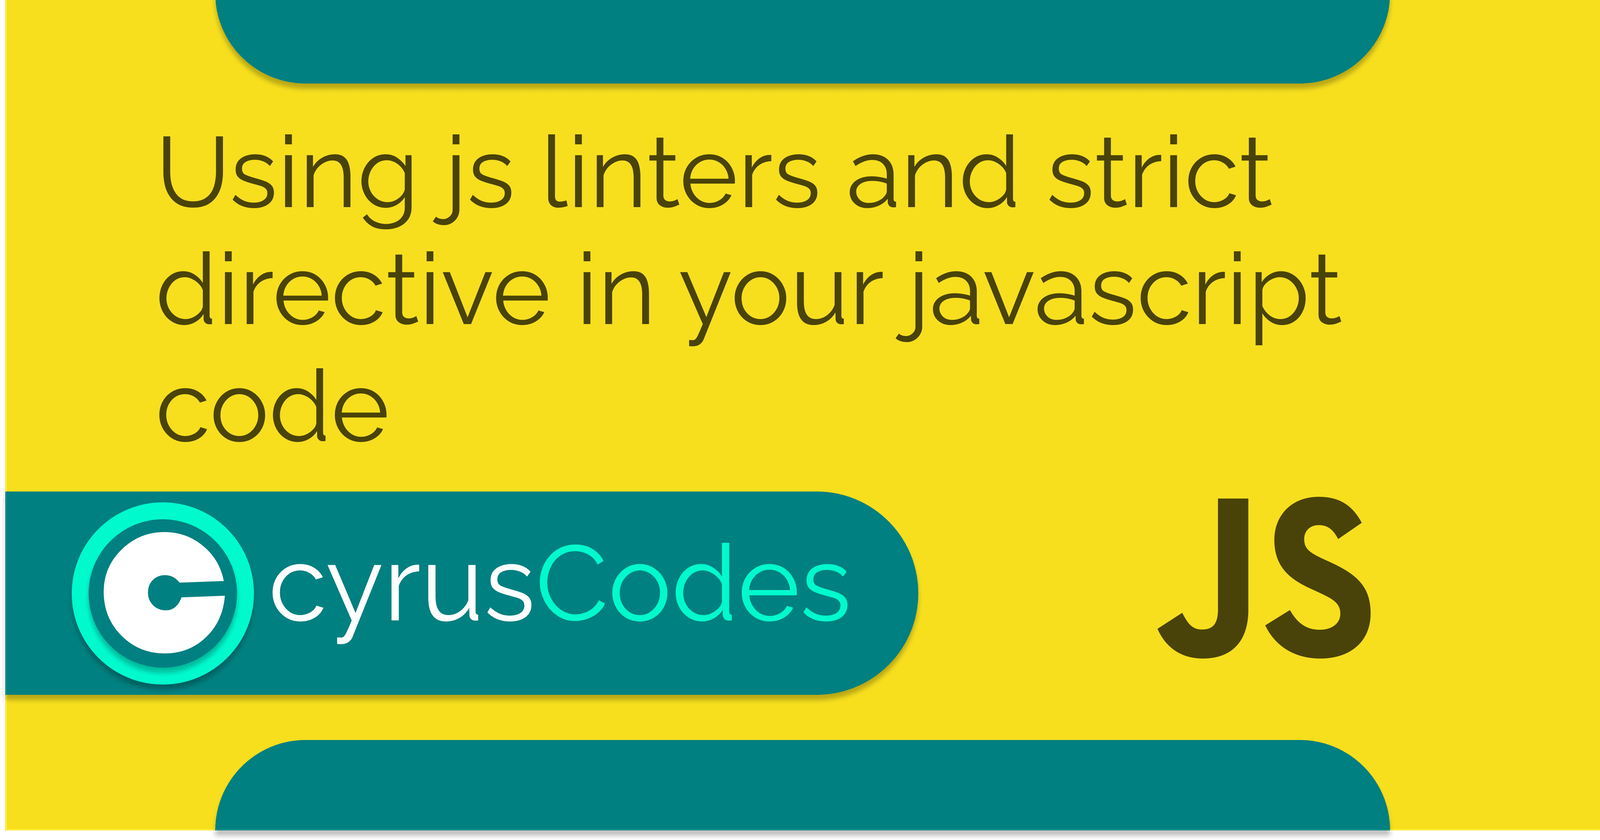 Using js linters and strict directive in your javascript code